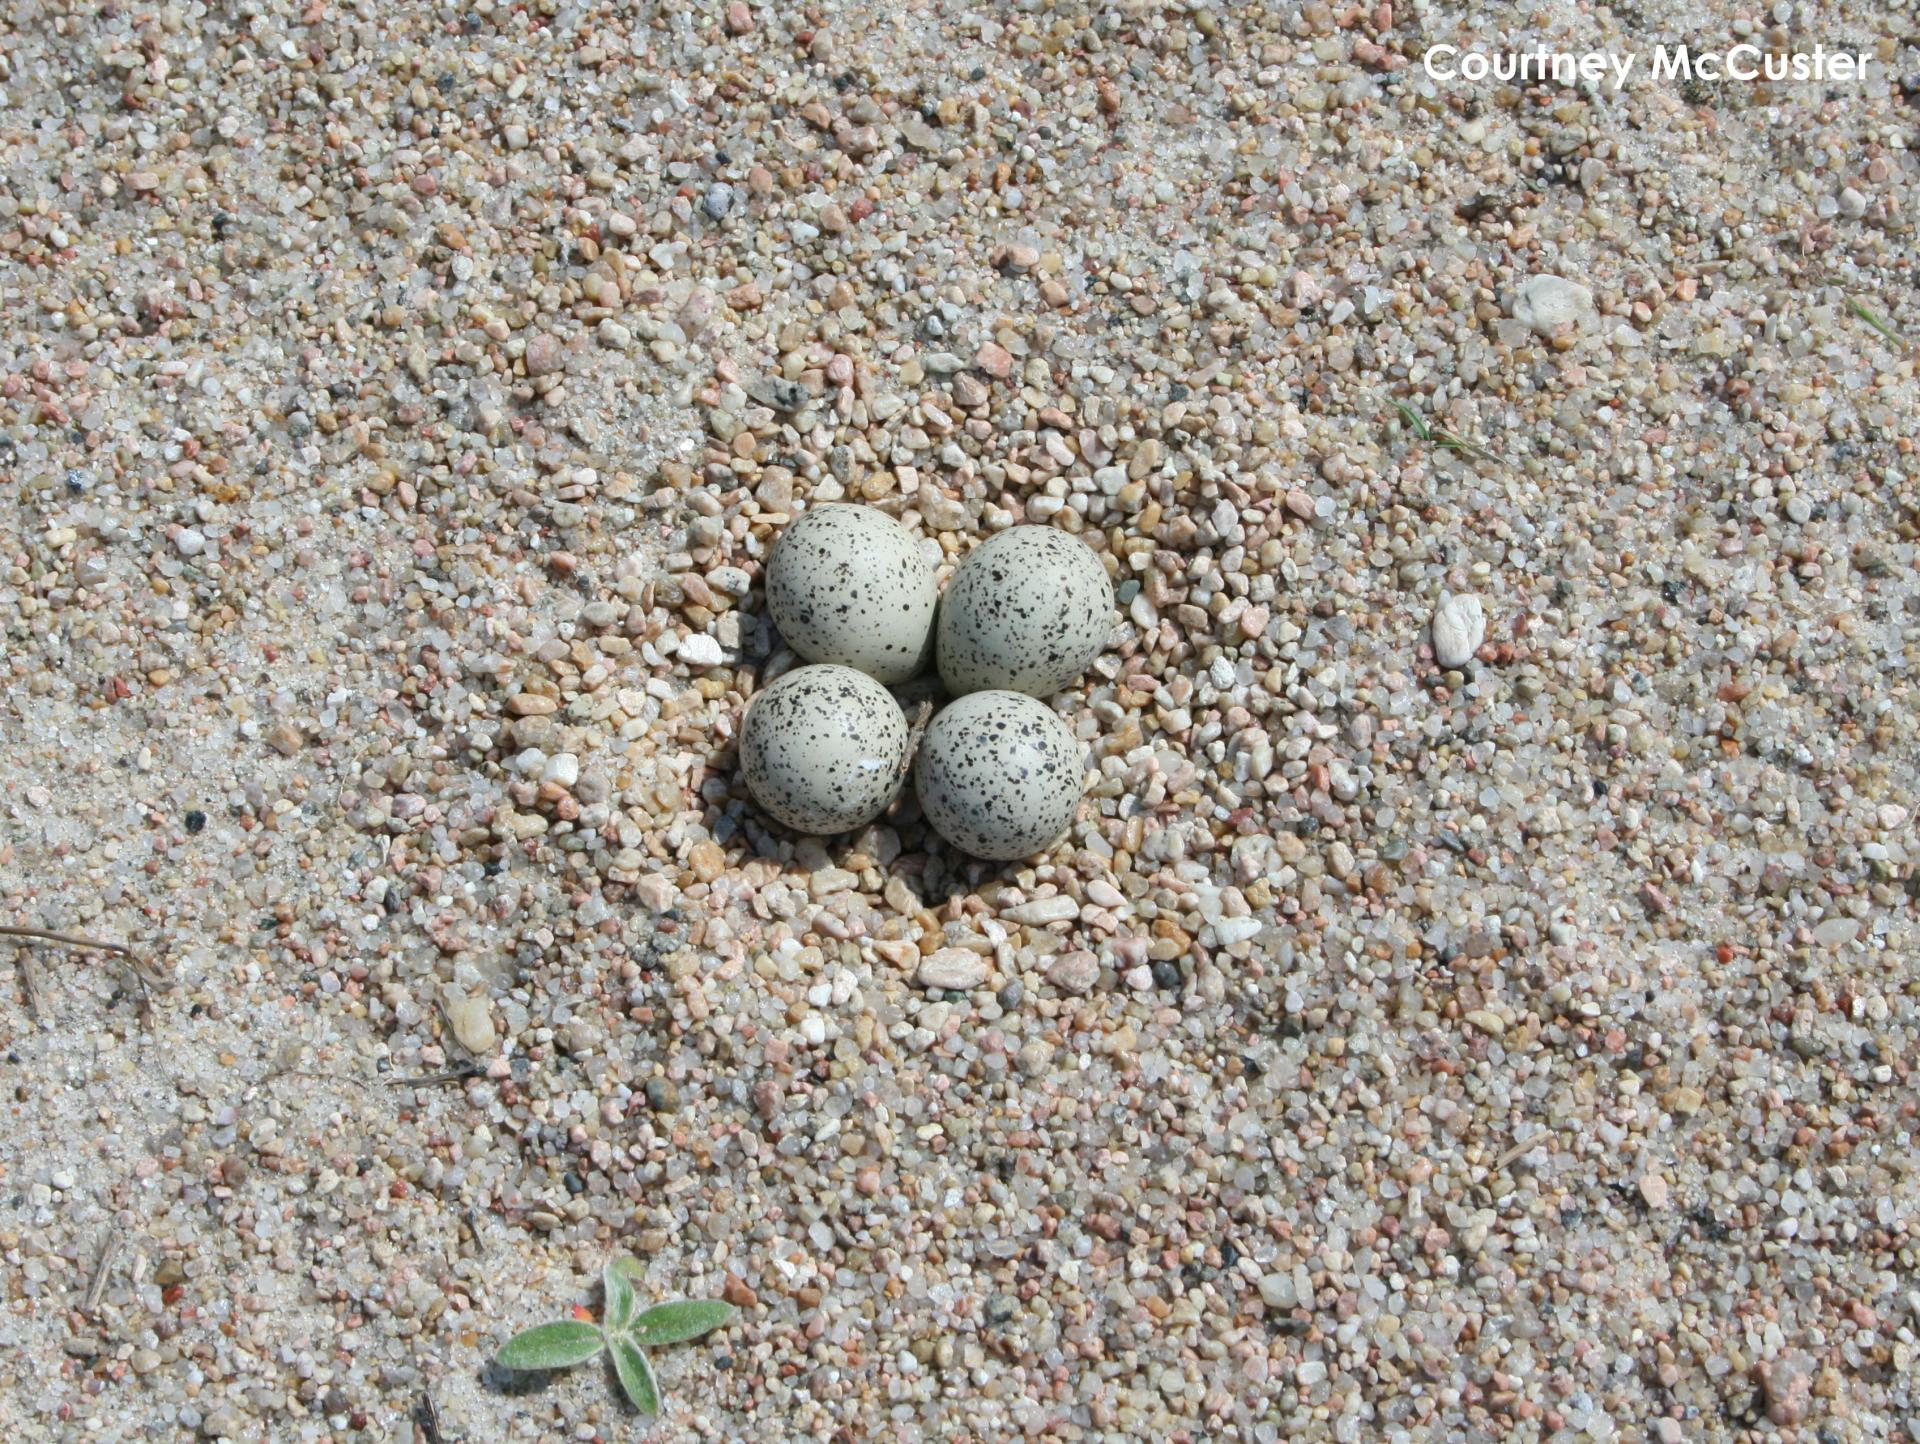 Piping Plover nest lined with small pebbles